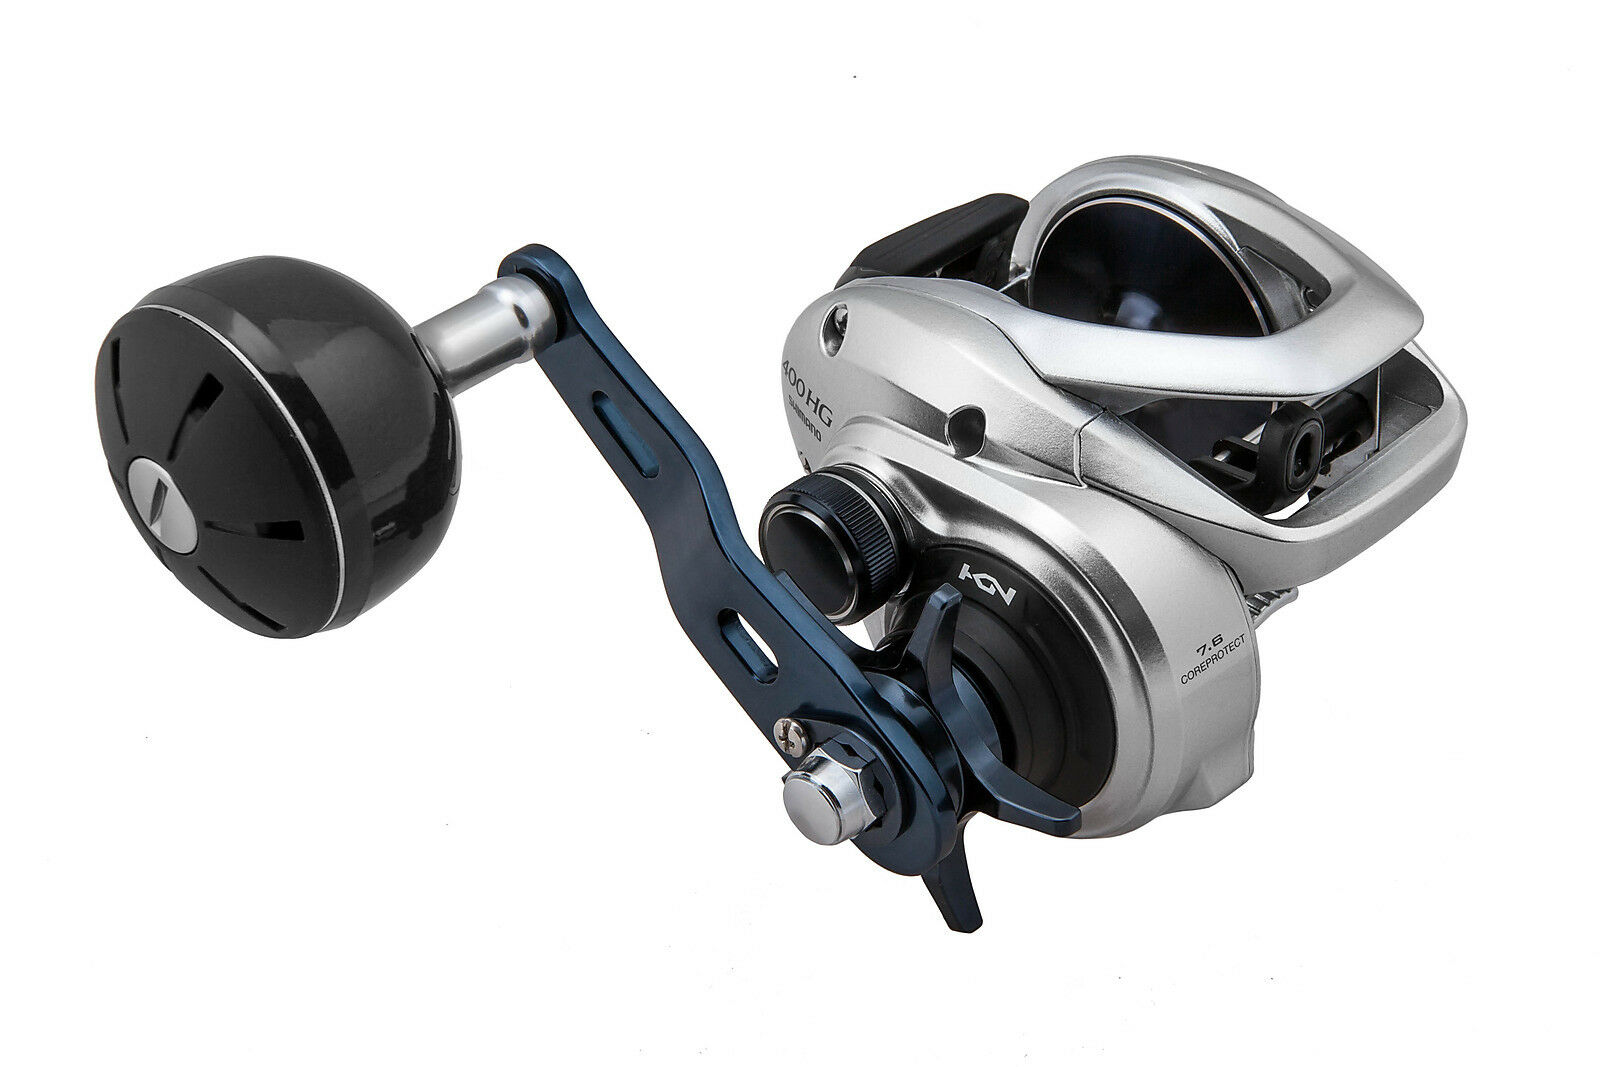 Shimano Tranx 301HG Low Profile Lefty Reel TRX301AHG - FREE SHIPPING -